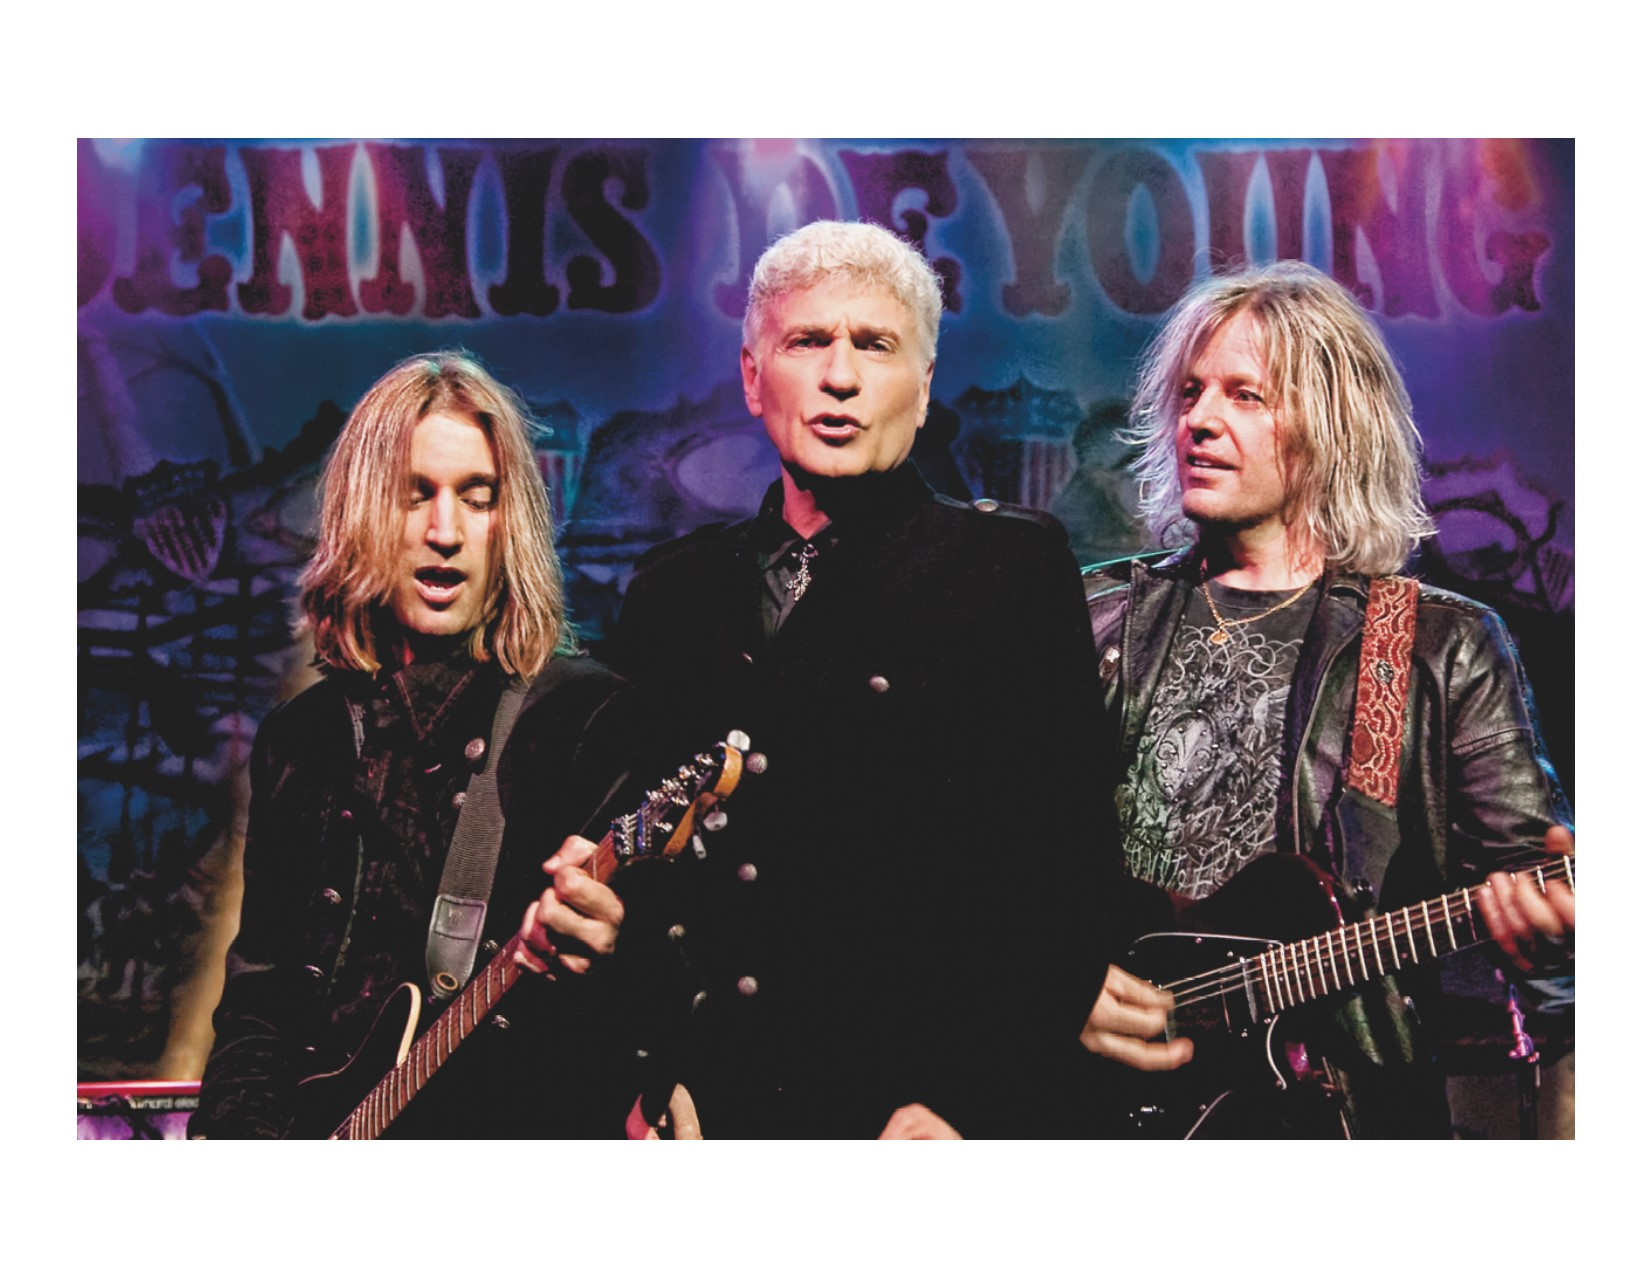 Dennis DeYoung in Focus